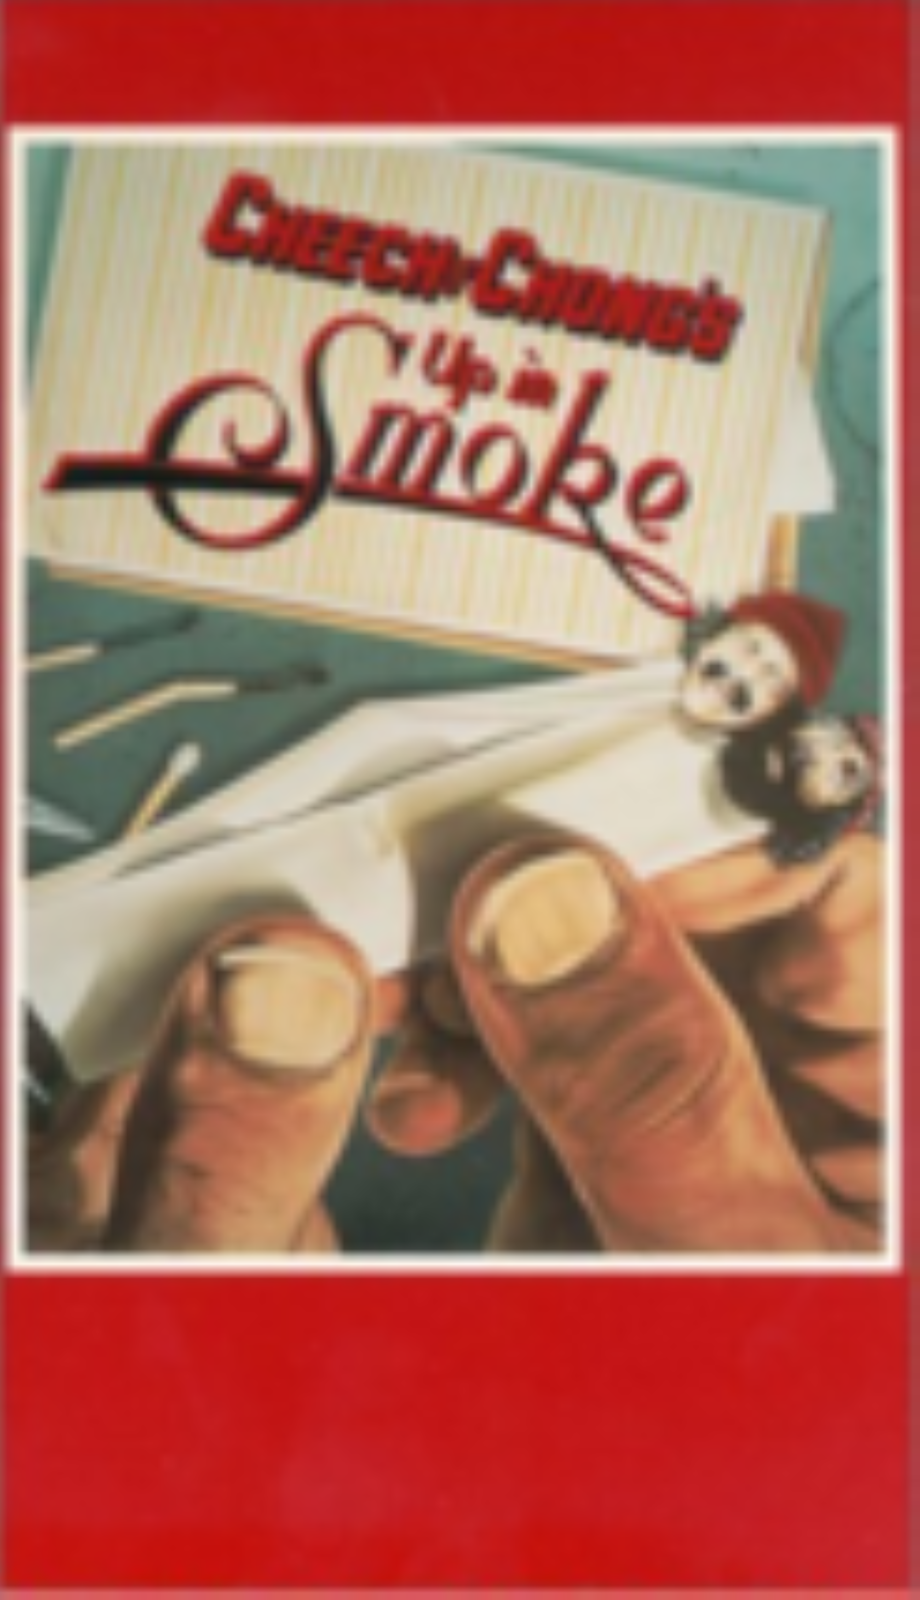 Up in Smoke Vhs